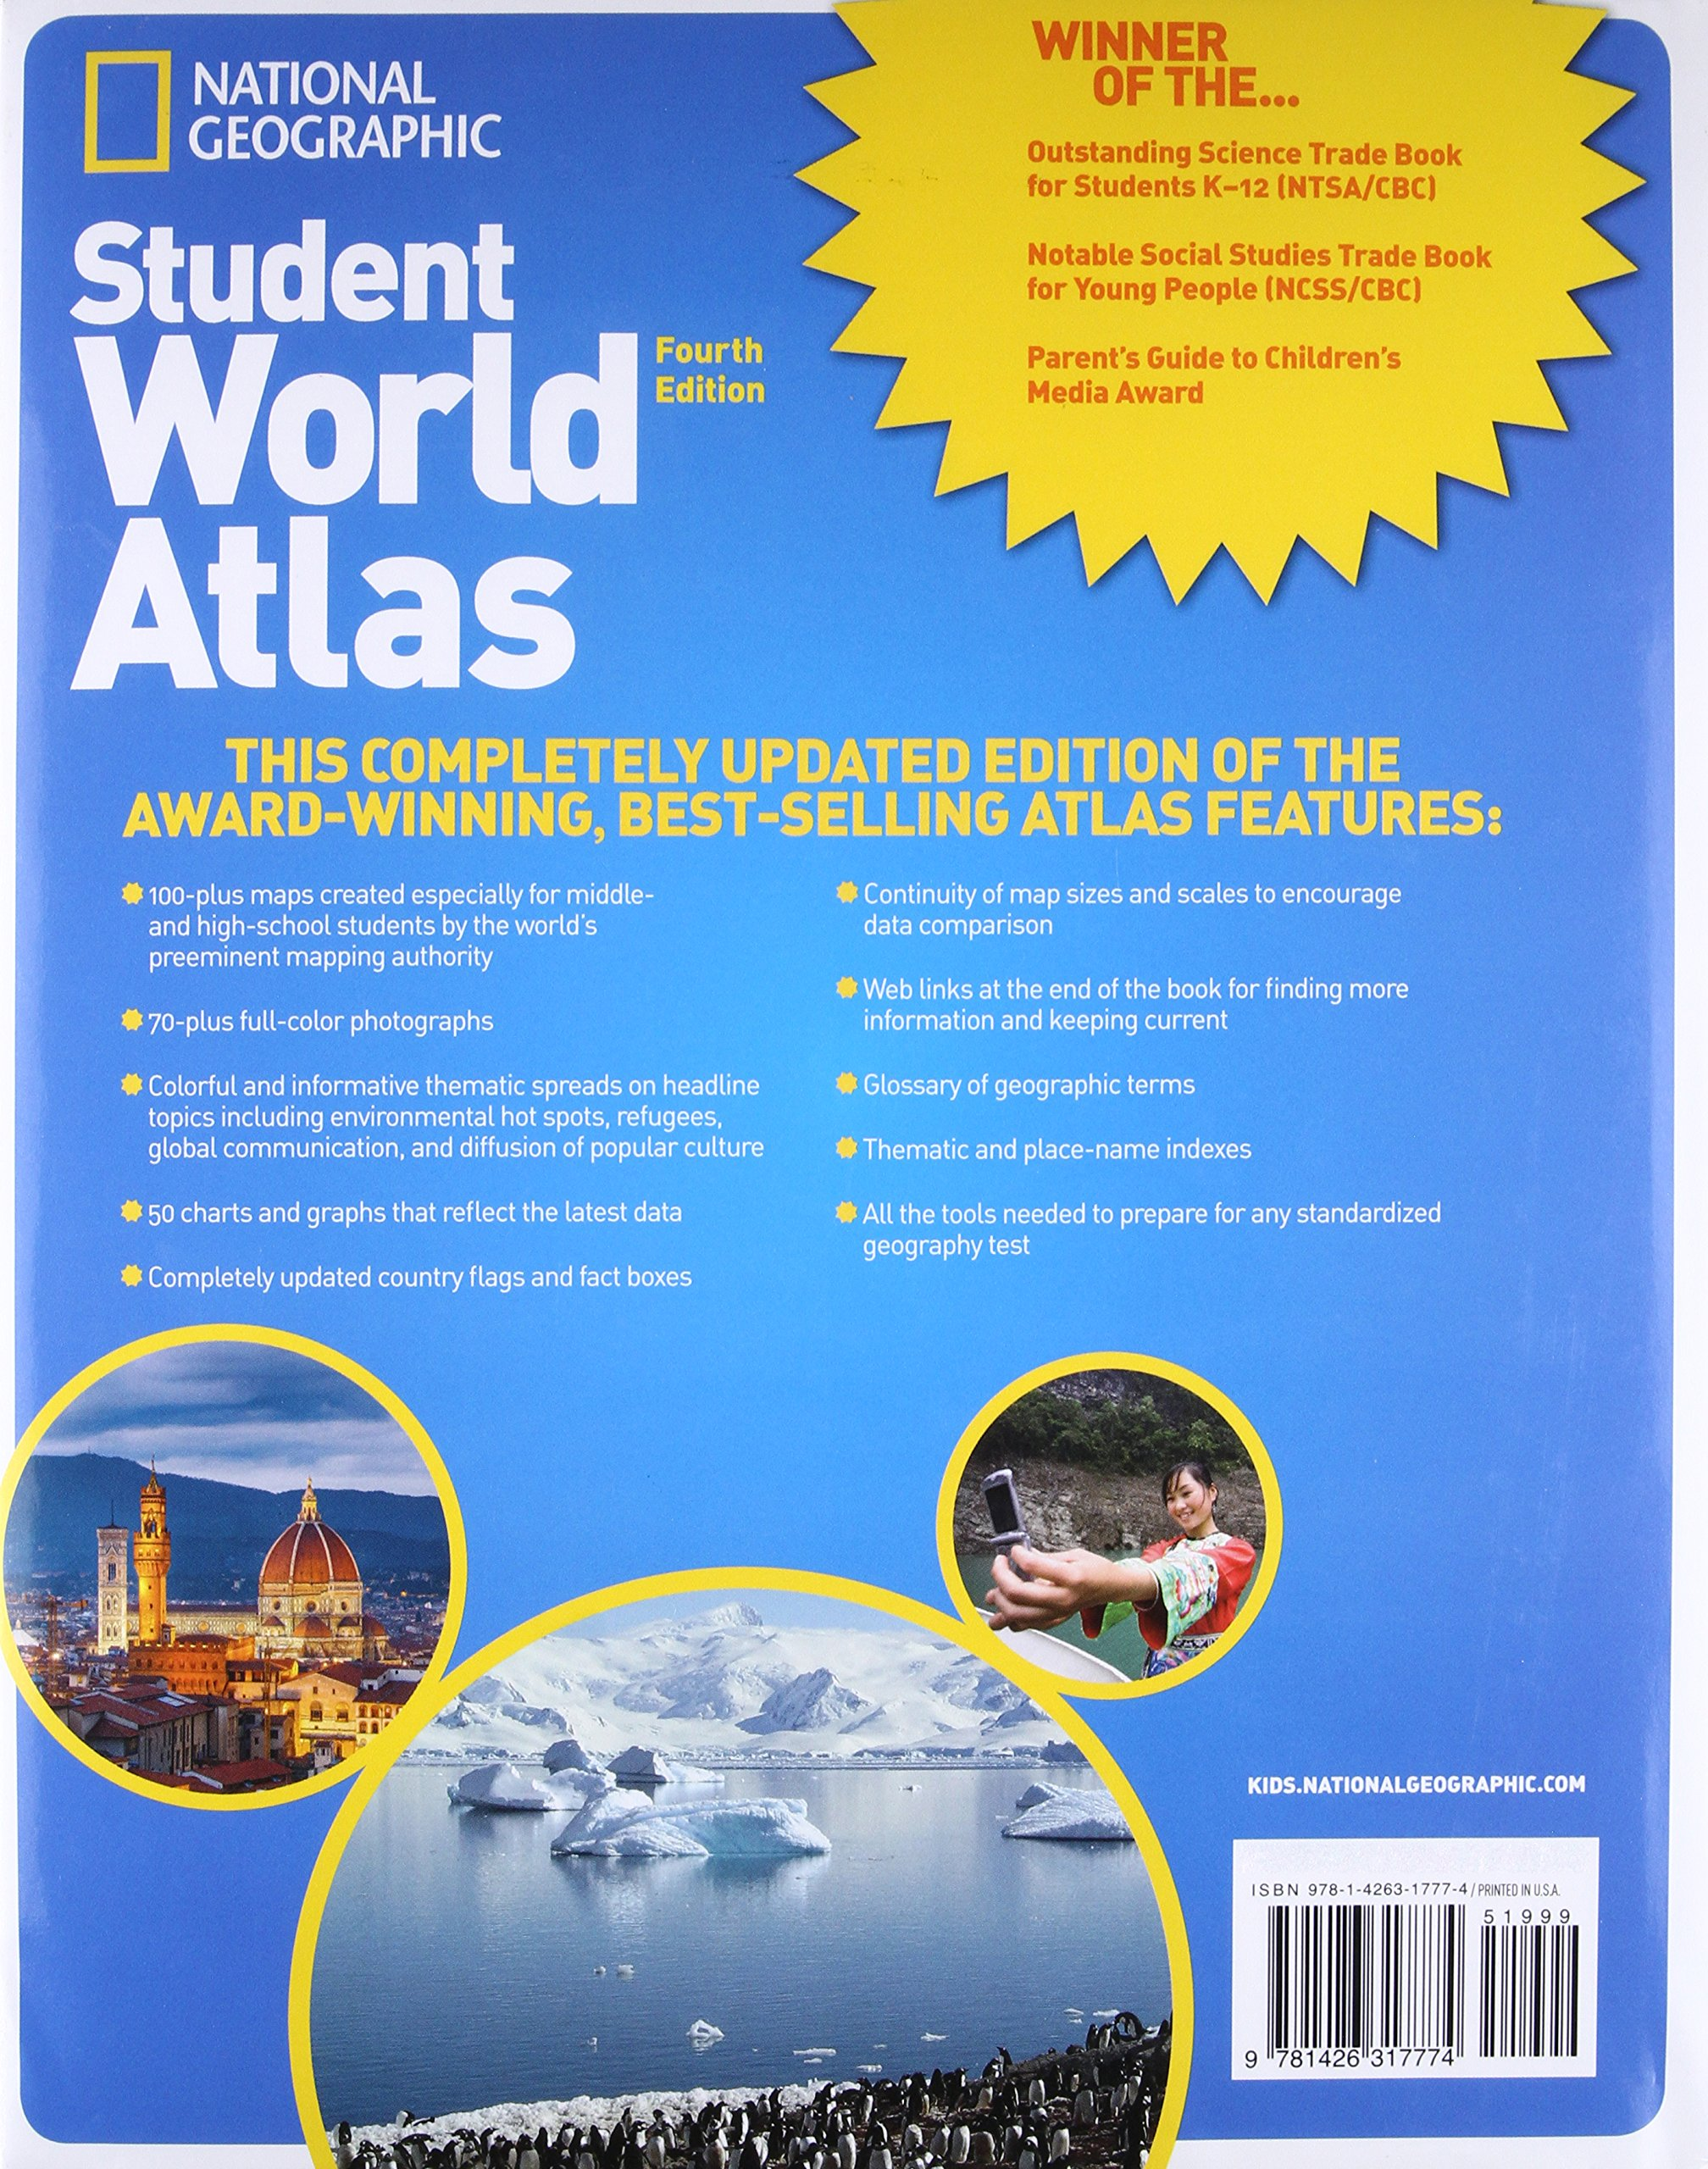 National Geographic Student World Atlas, Fourth Edition: Your Fact-Filled Reference for School and Home! by imusti (Image #2)